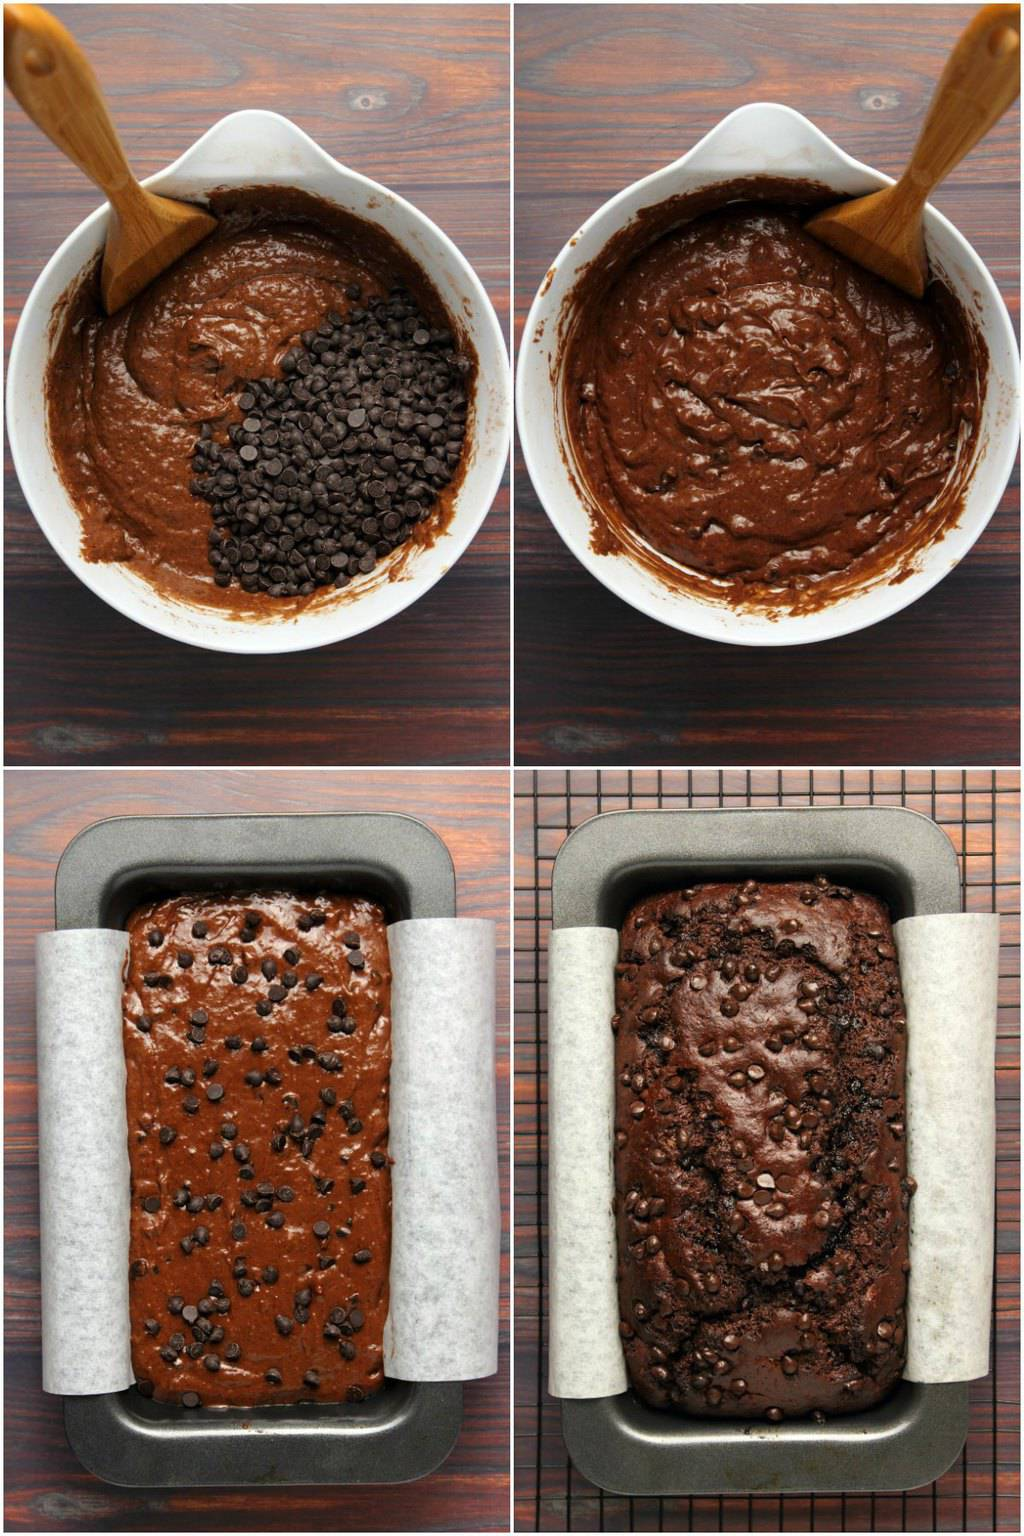 Step by step process photo collage of making vegan chocolate banana bread